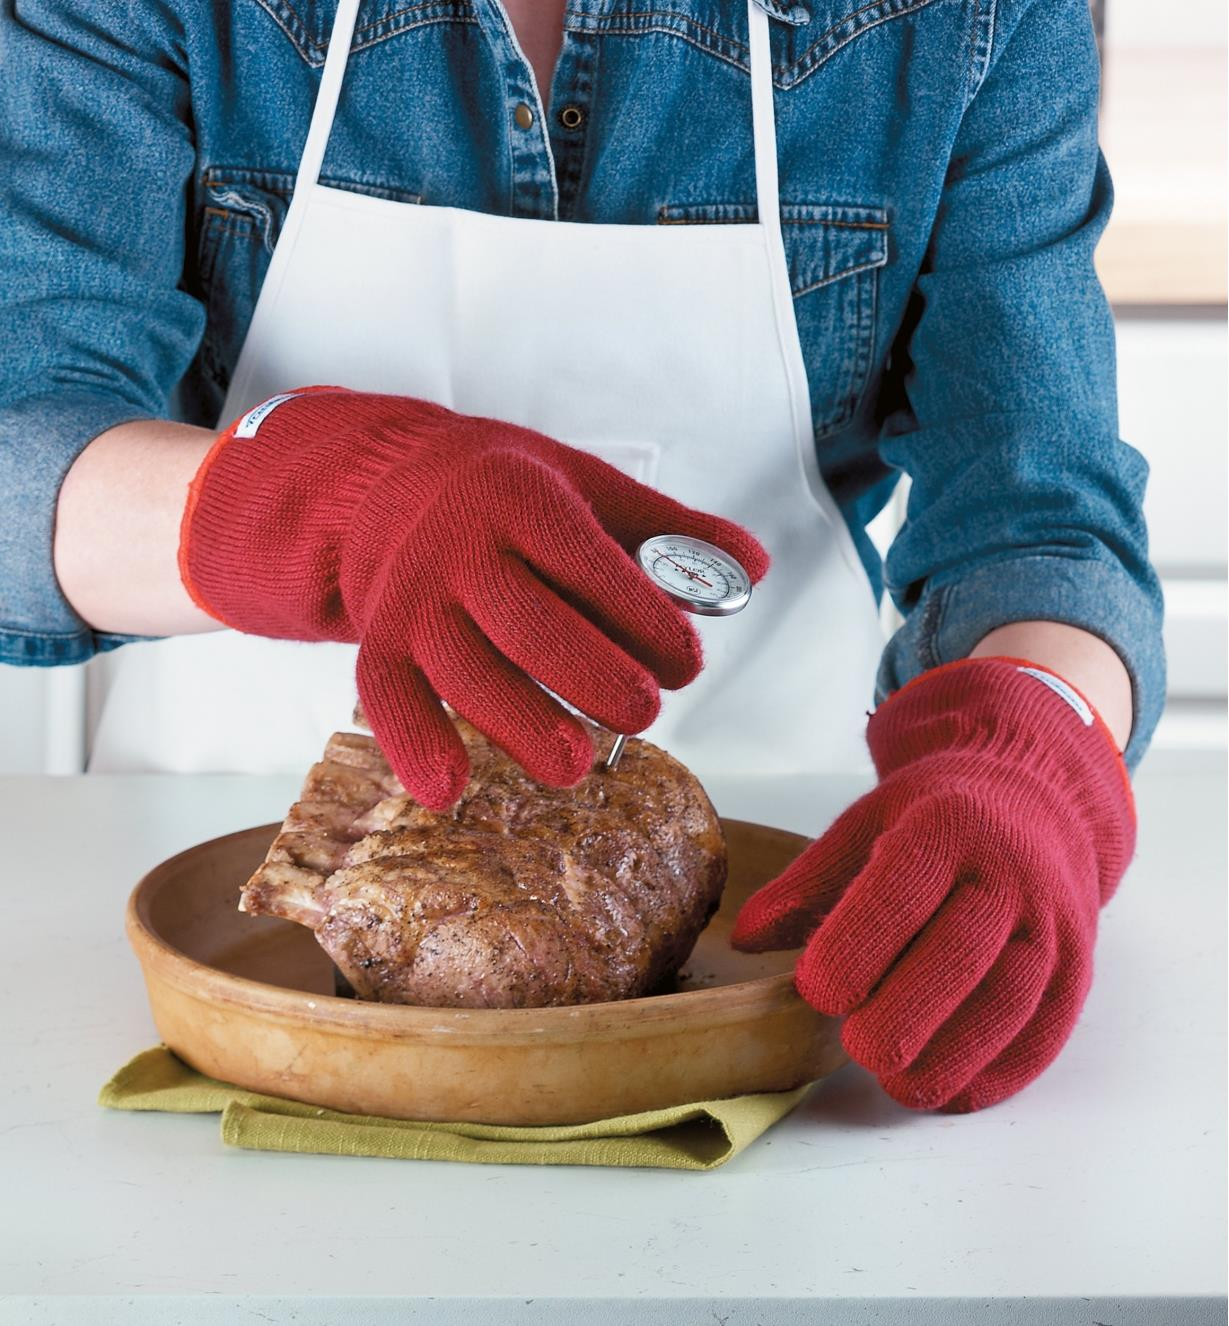 Oven gloves worn while handling a meat thermometer